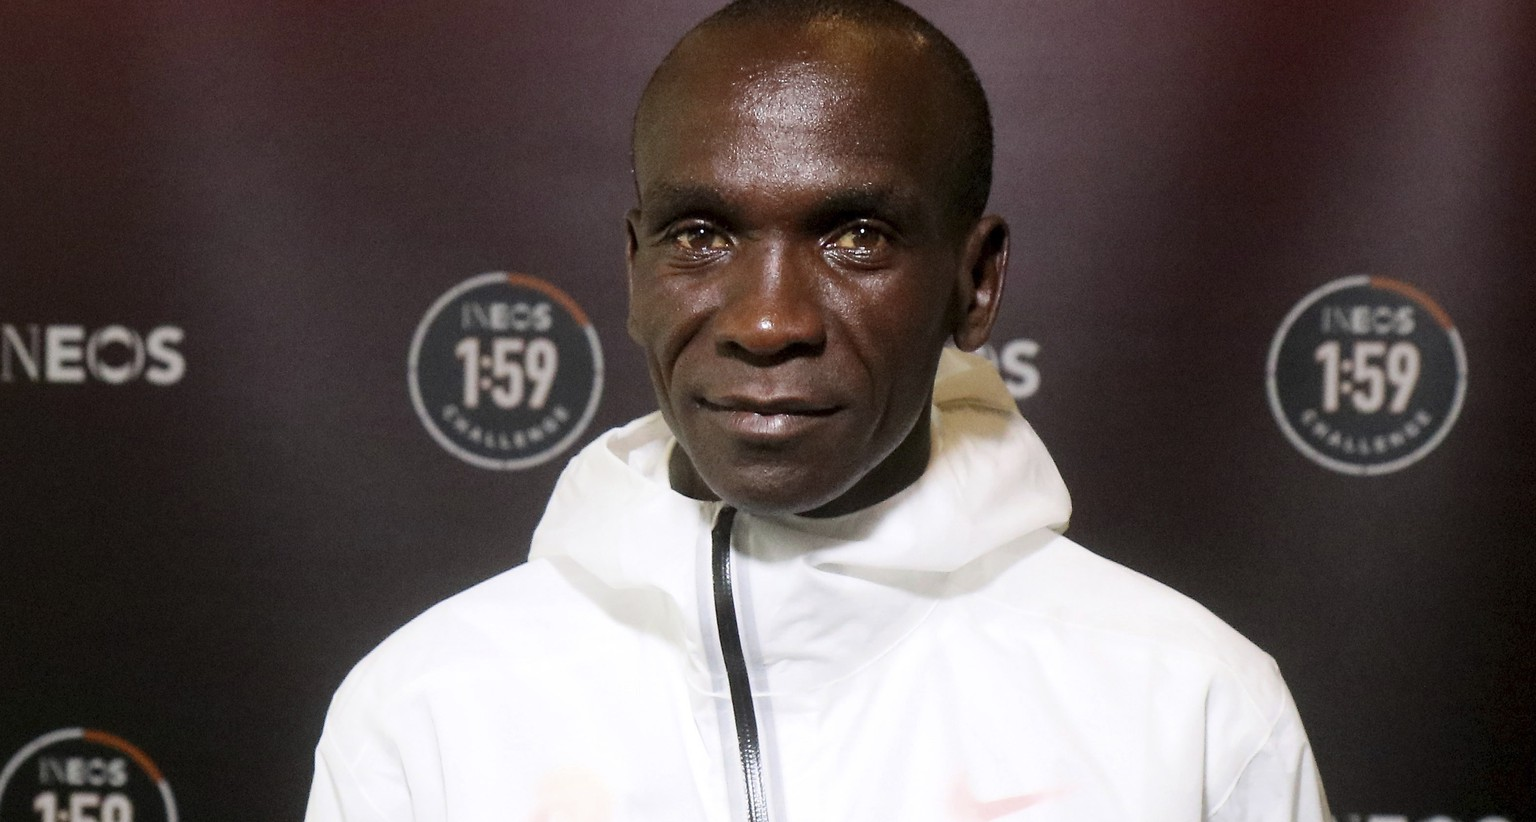 Marathon runner Eliud Kipchoge from Kenya poses for photographers prior to a press conference in Vienna, Austria, Thursday, Oct. 10, 2019. Kipchoge's attempt to run a sub two-hour marathon has been set for Saturday, Oct. 12 in Prater park, a landmark part of the Vienna City Marathon. (AP Photo/Ronald Zak)